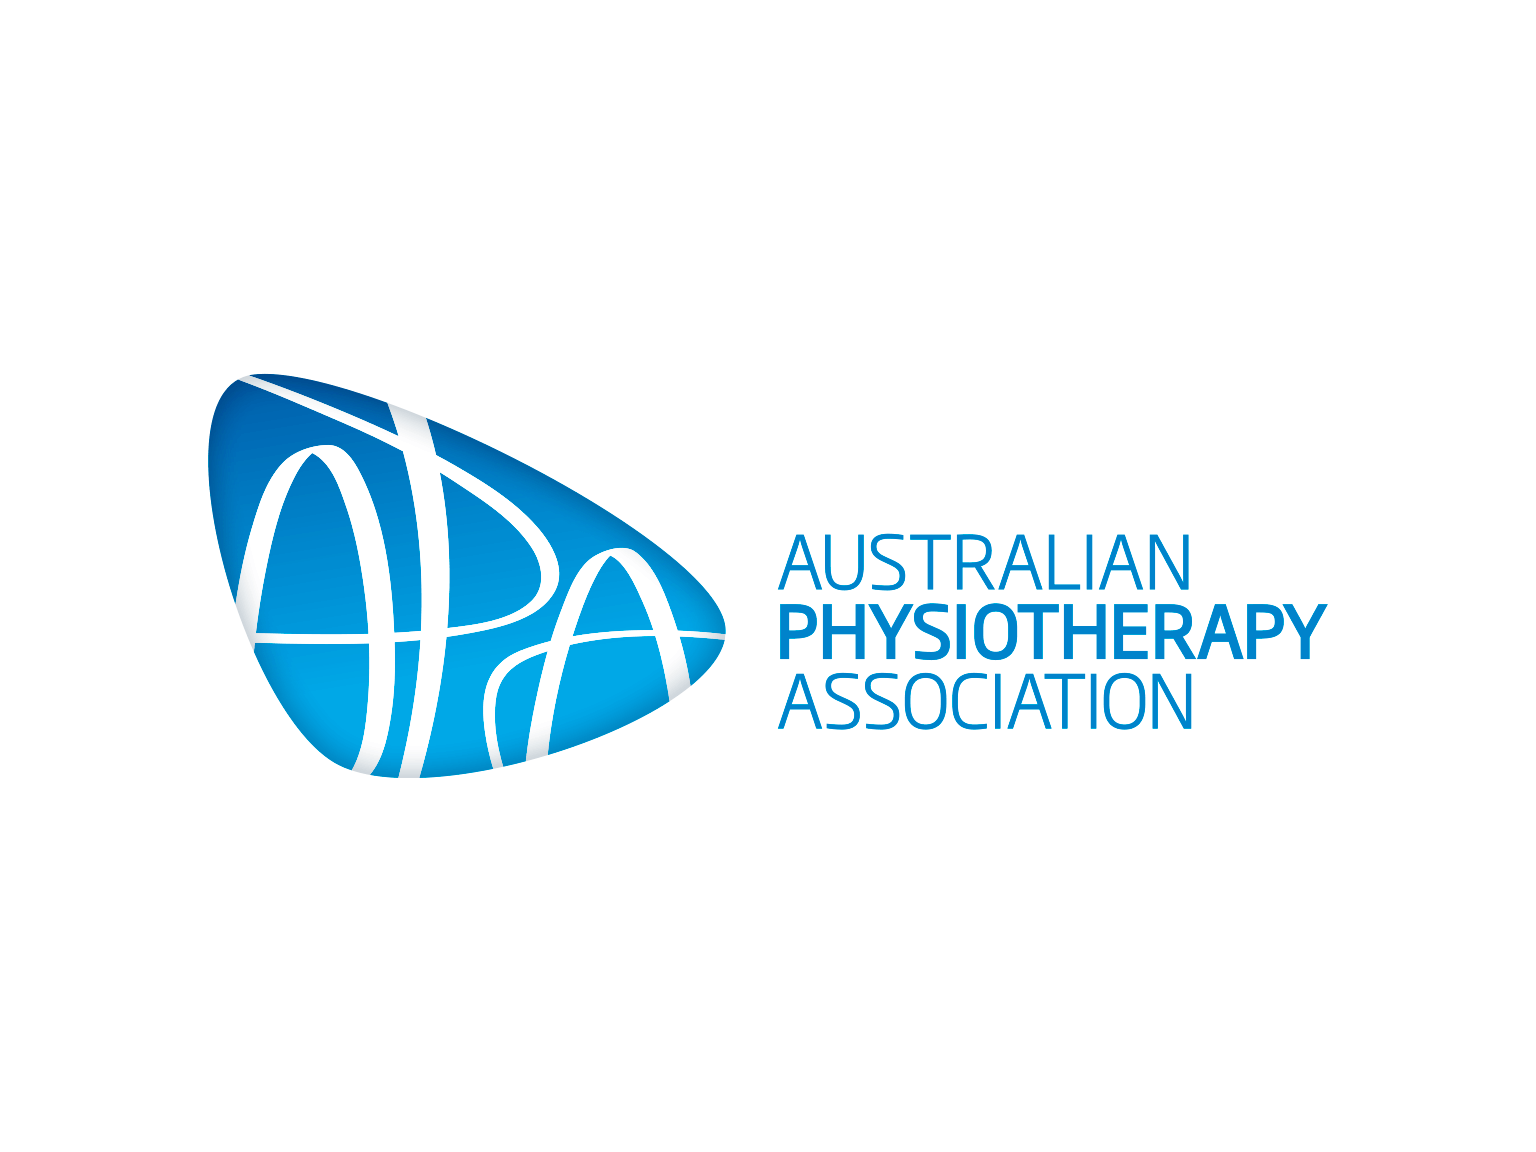 The APA logo